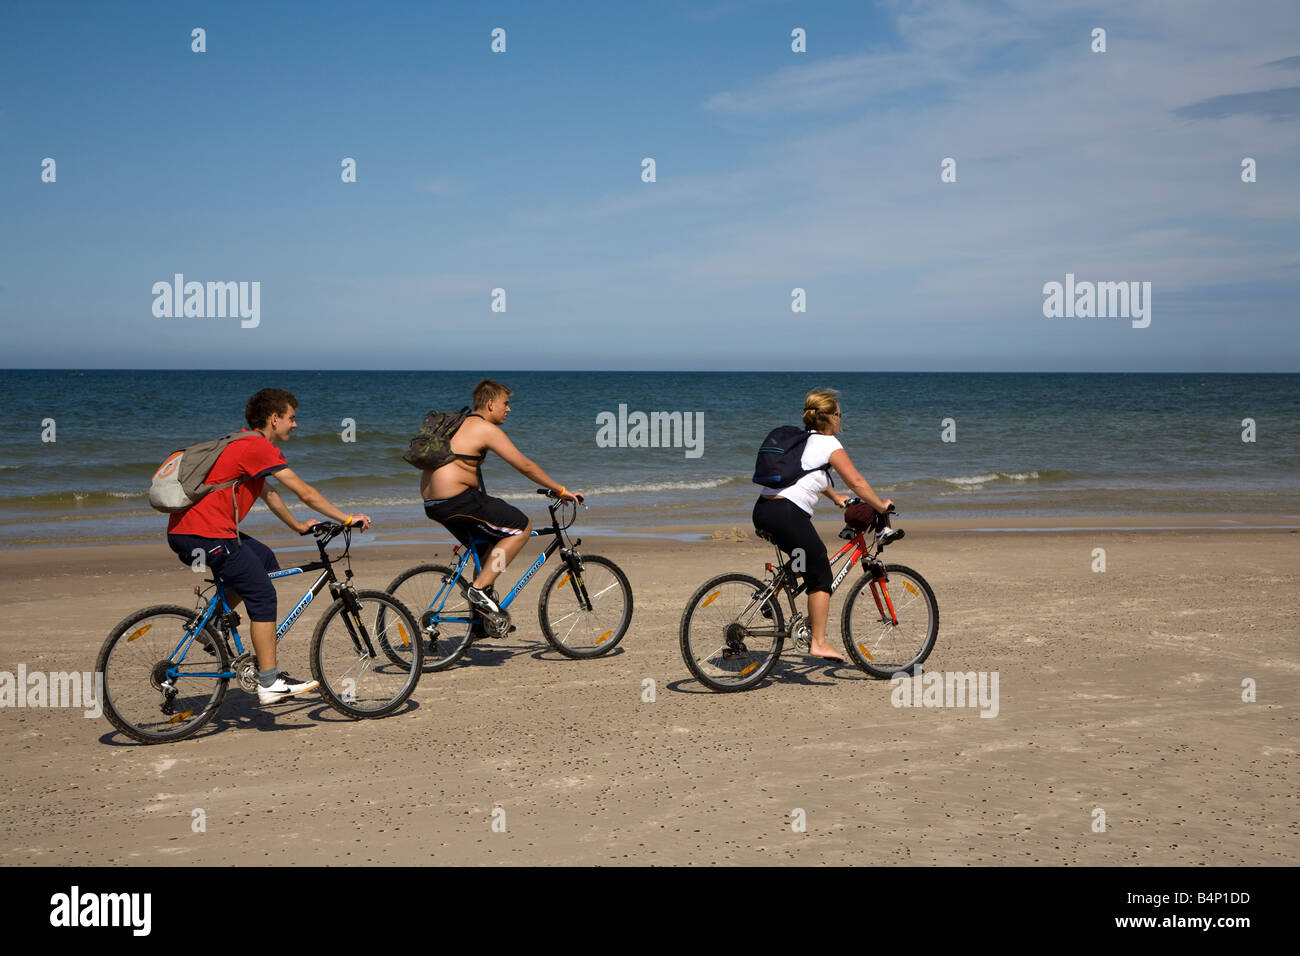 Three people cycling on beach on Baltic Sea Slowinski national park Poland - Stock Image